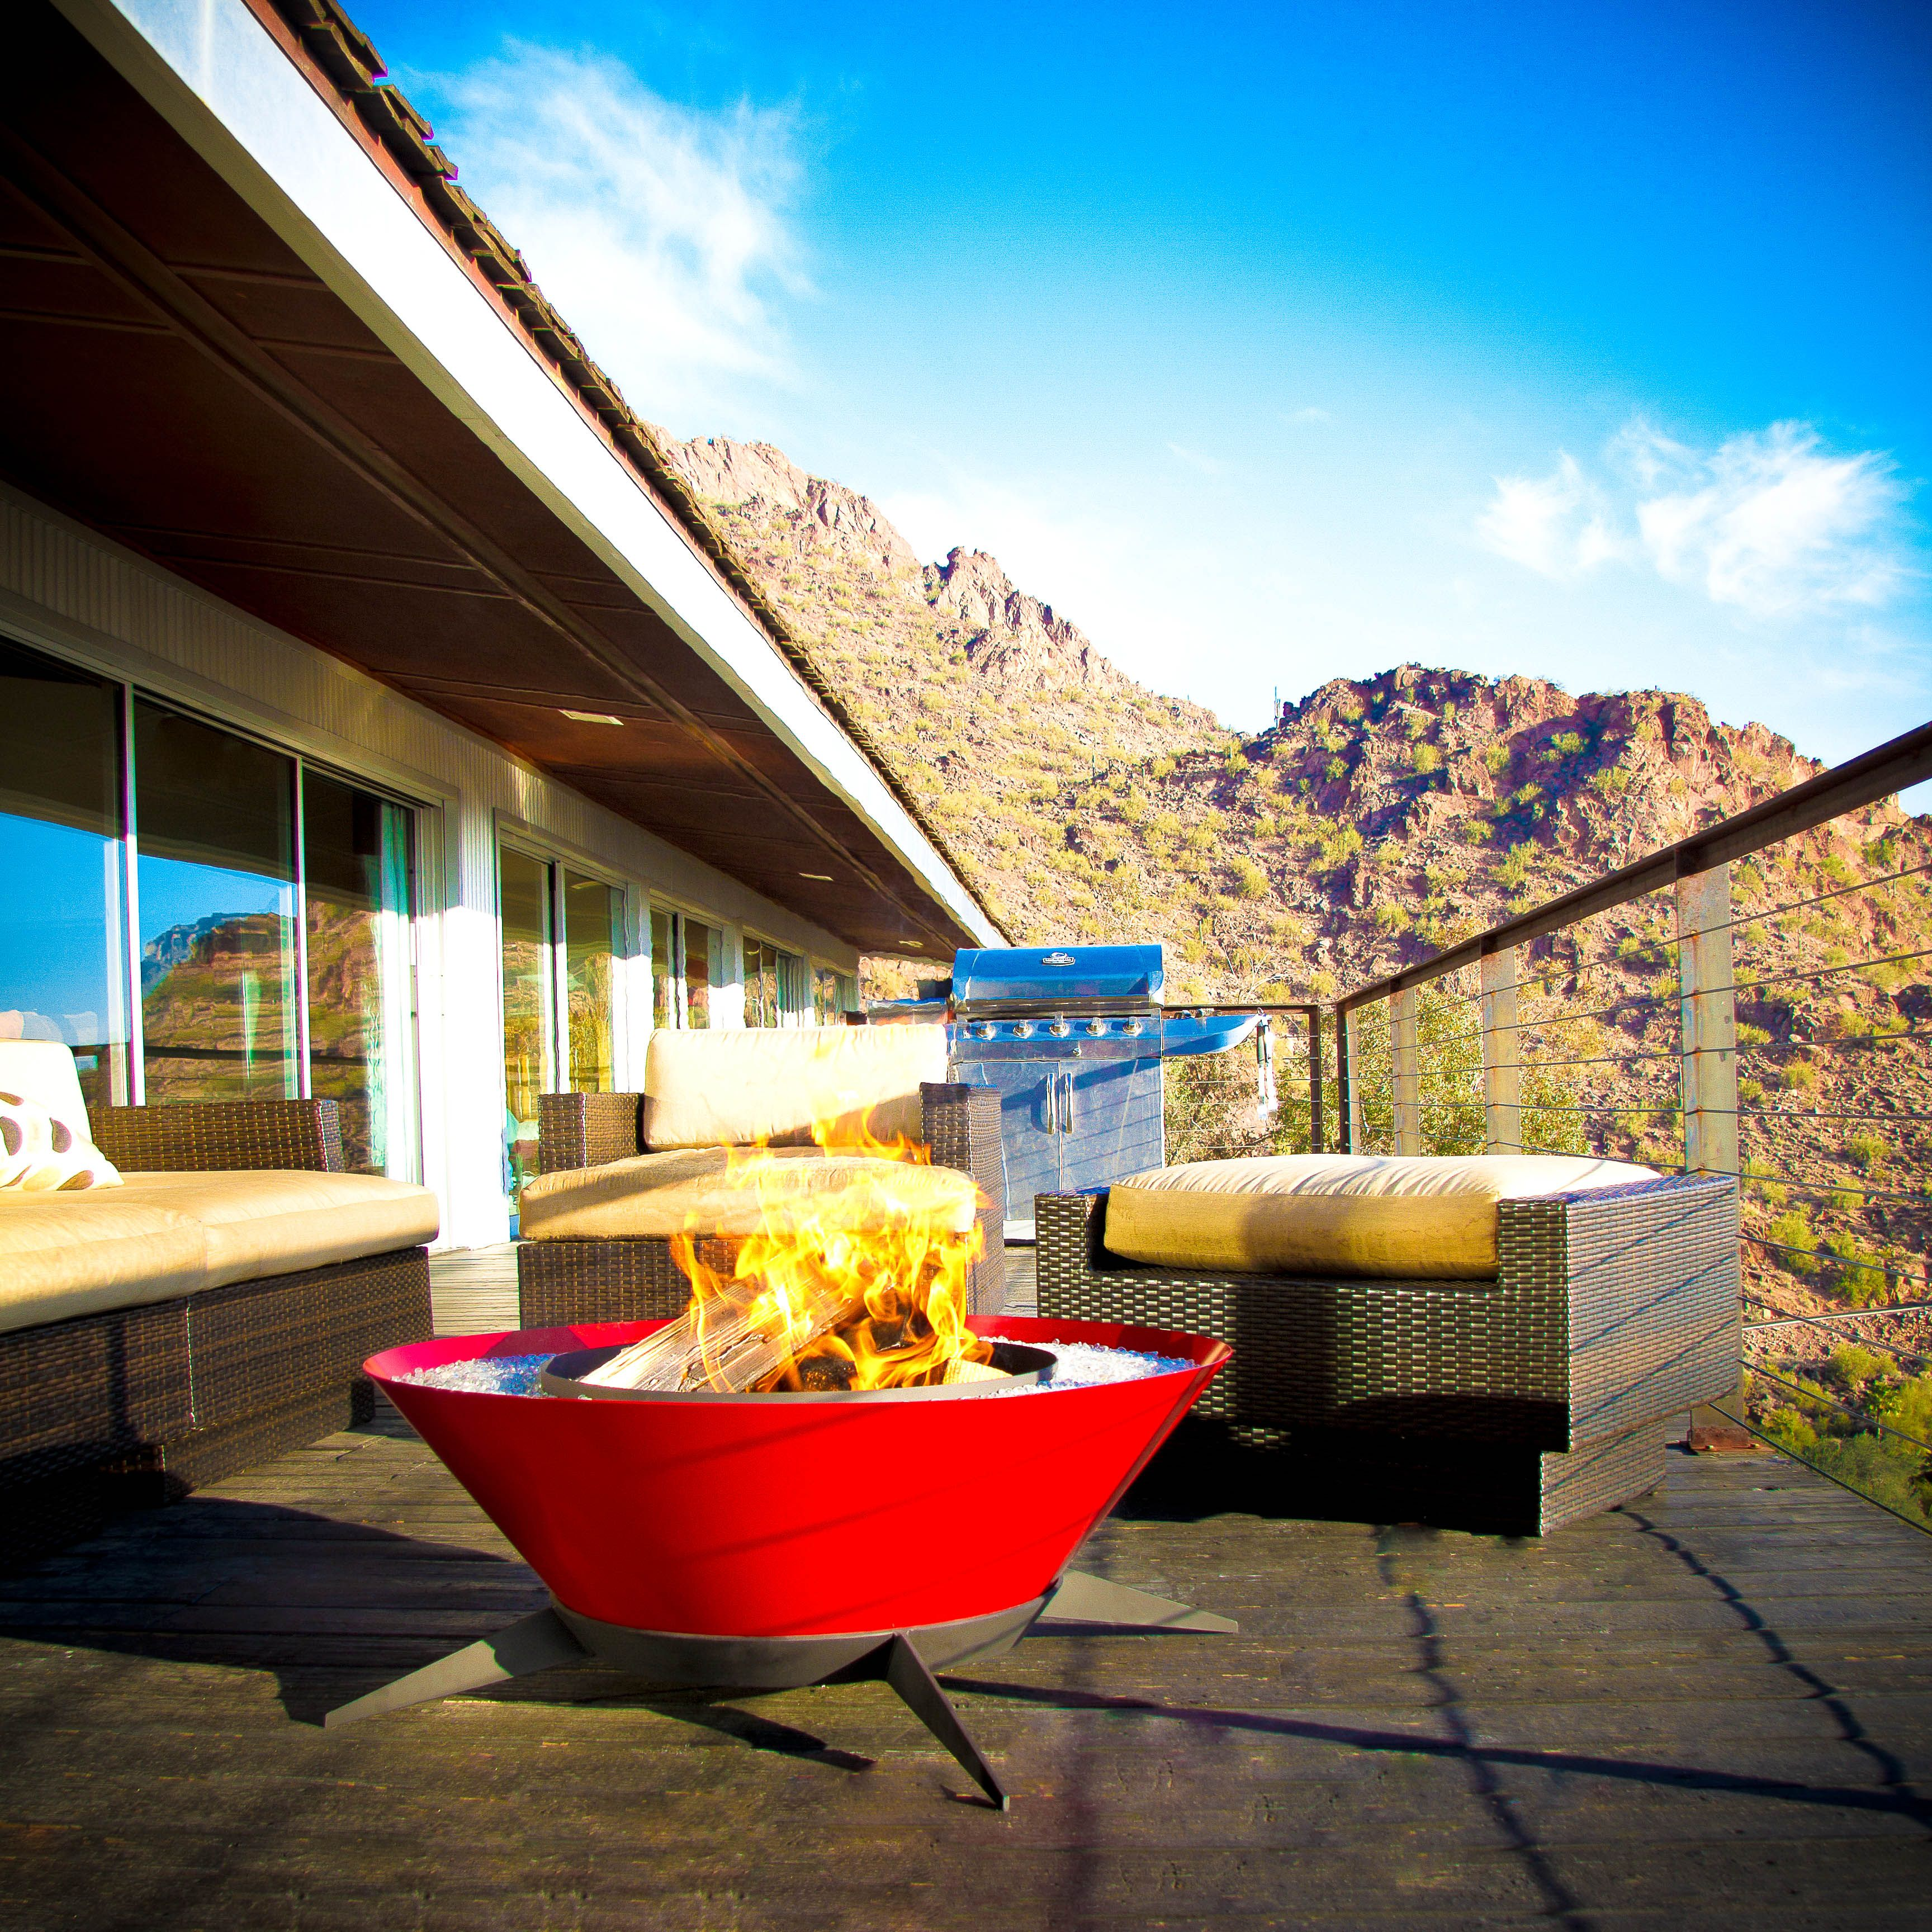 Astrofire by Modfire stunning in Maraschino A Midcentury Modern